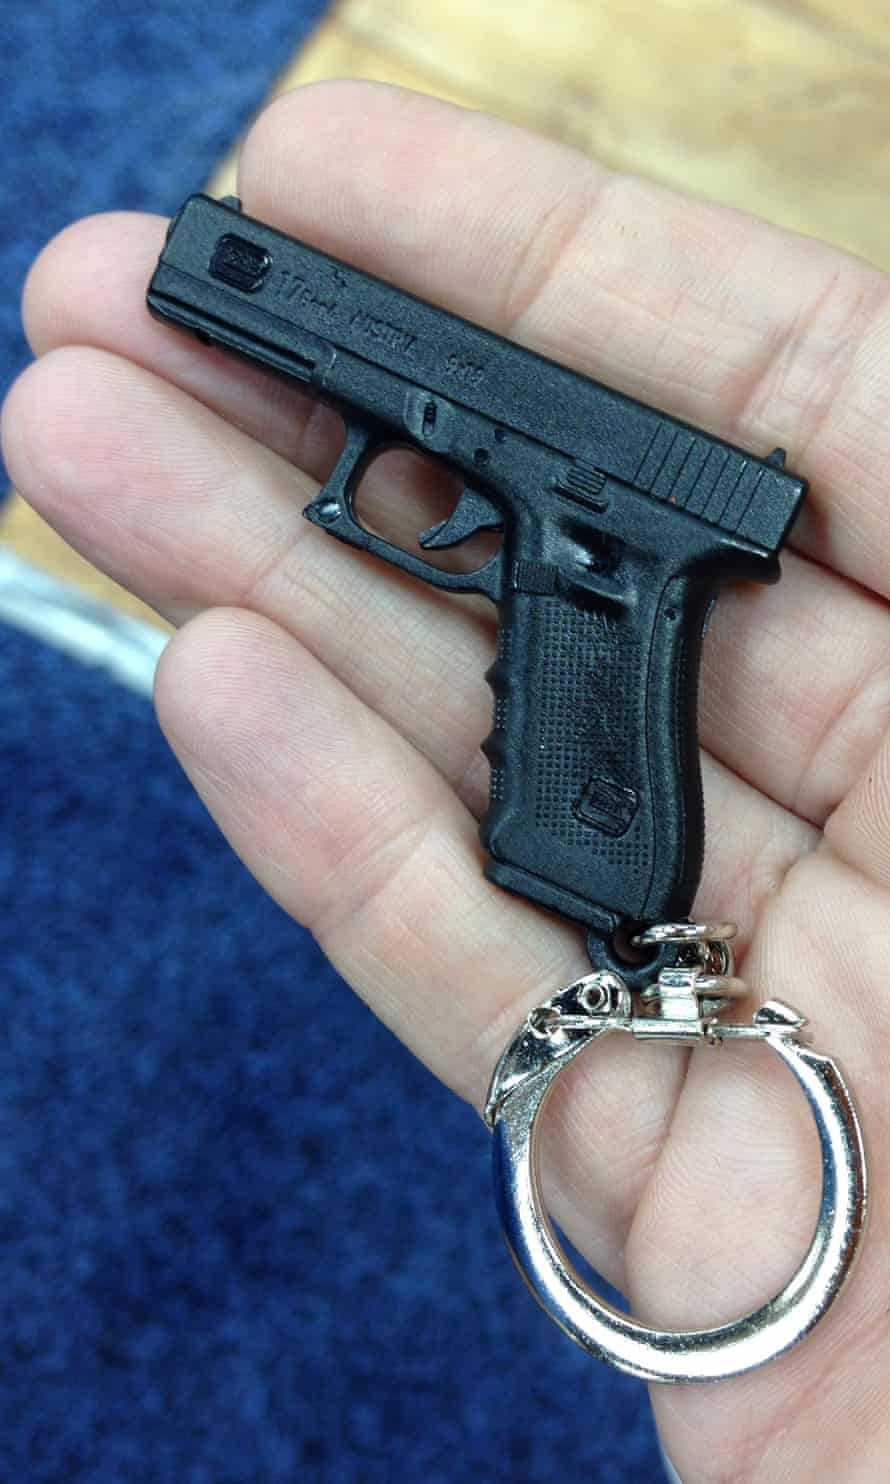 nra convention 2014 photo